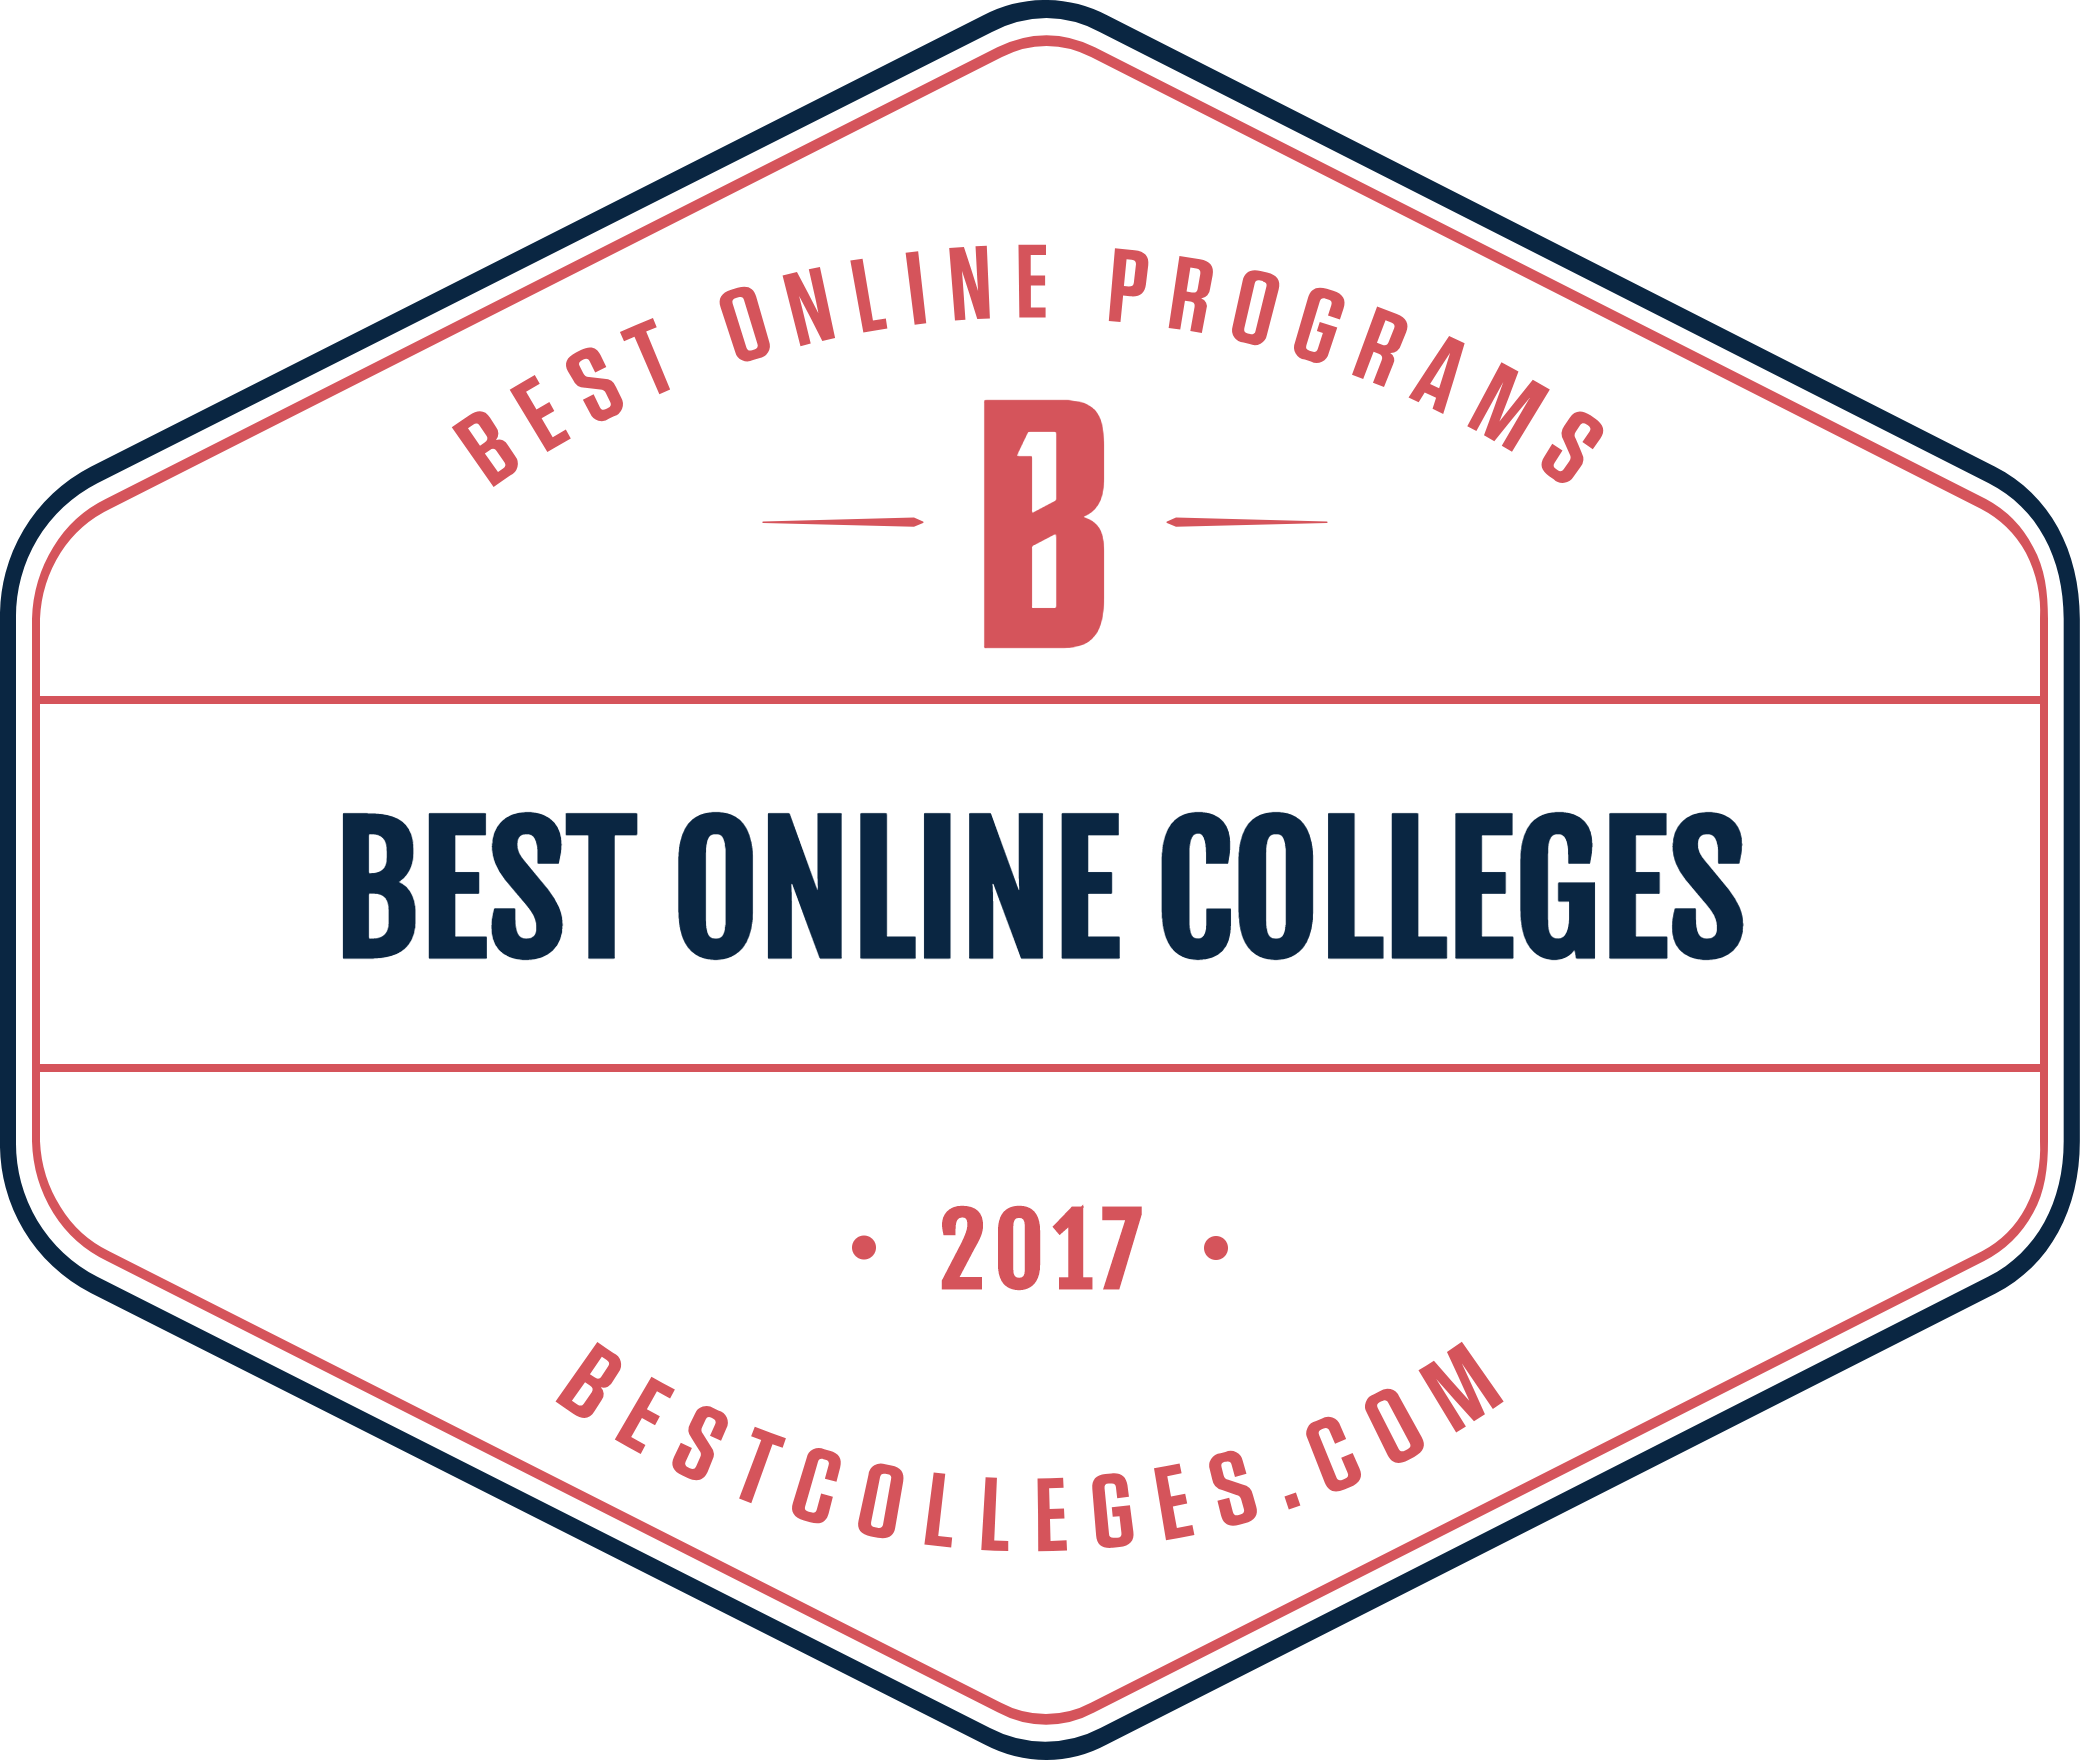 badge for bestcolleges.com ranking our online BSIT program number 15 for 2015